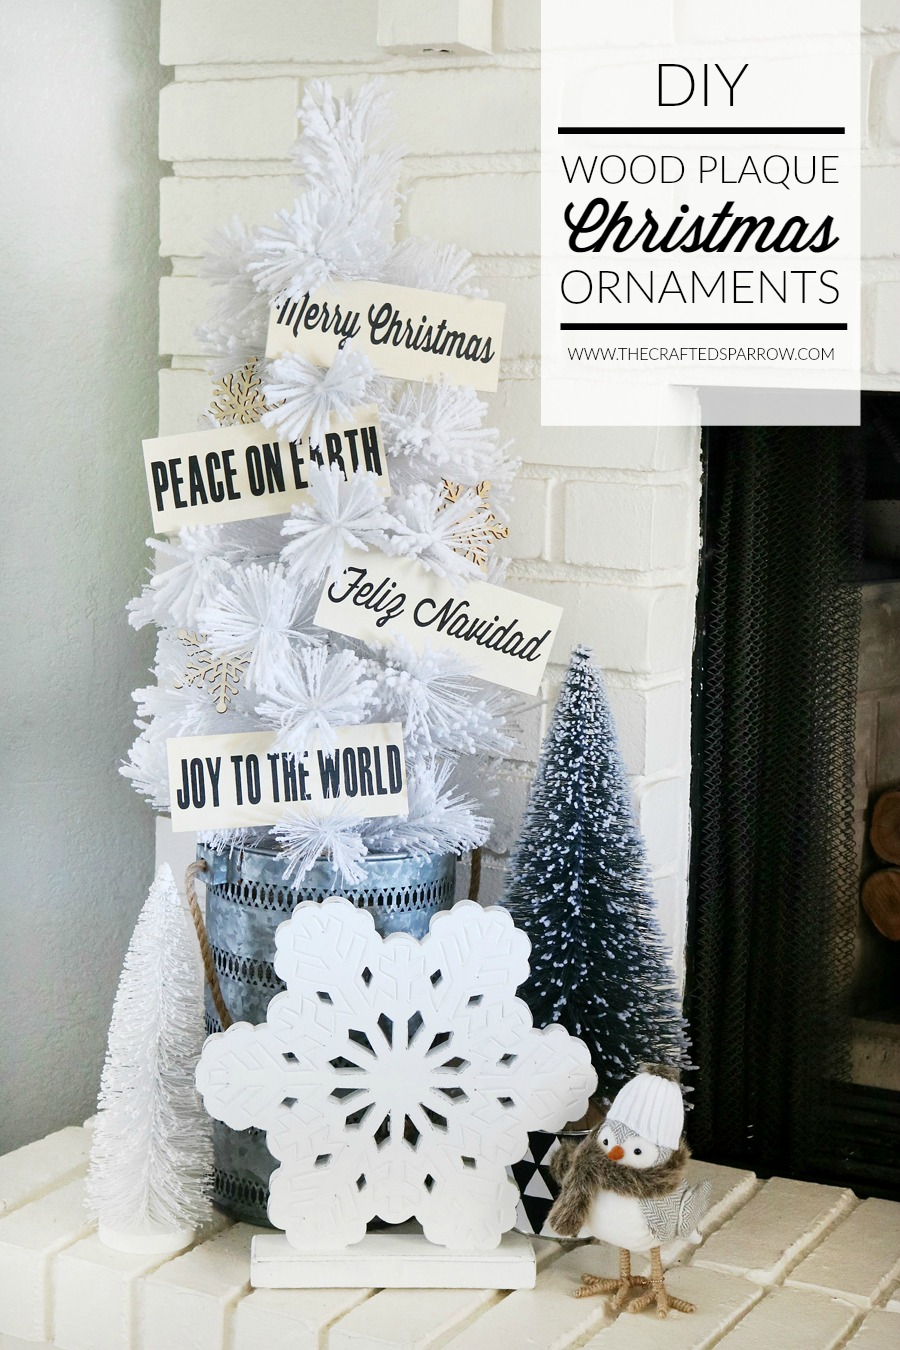 DIY Wood Plaque Christmas Ornaments